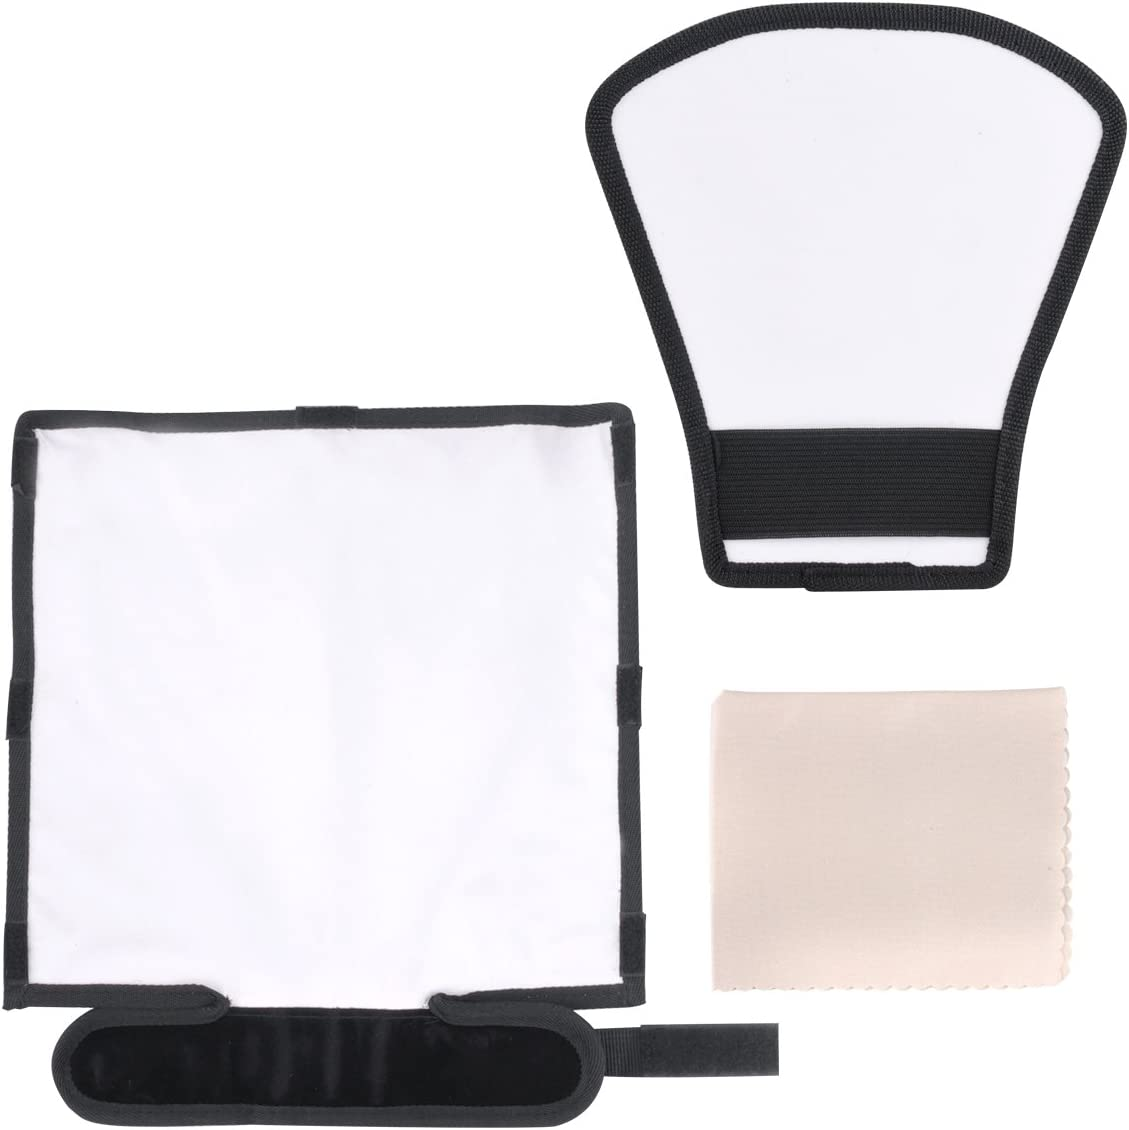 Silver//White Reflector Veatree Flash Diffuser Reflector Kit Bend Bounce Positionable Diffuser Universal Mount for Canon Yongnuo Nikon and Other Speedlight